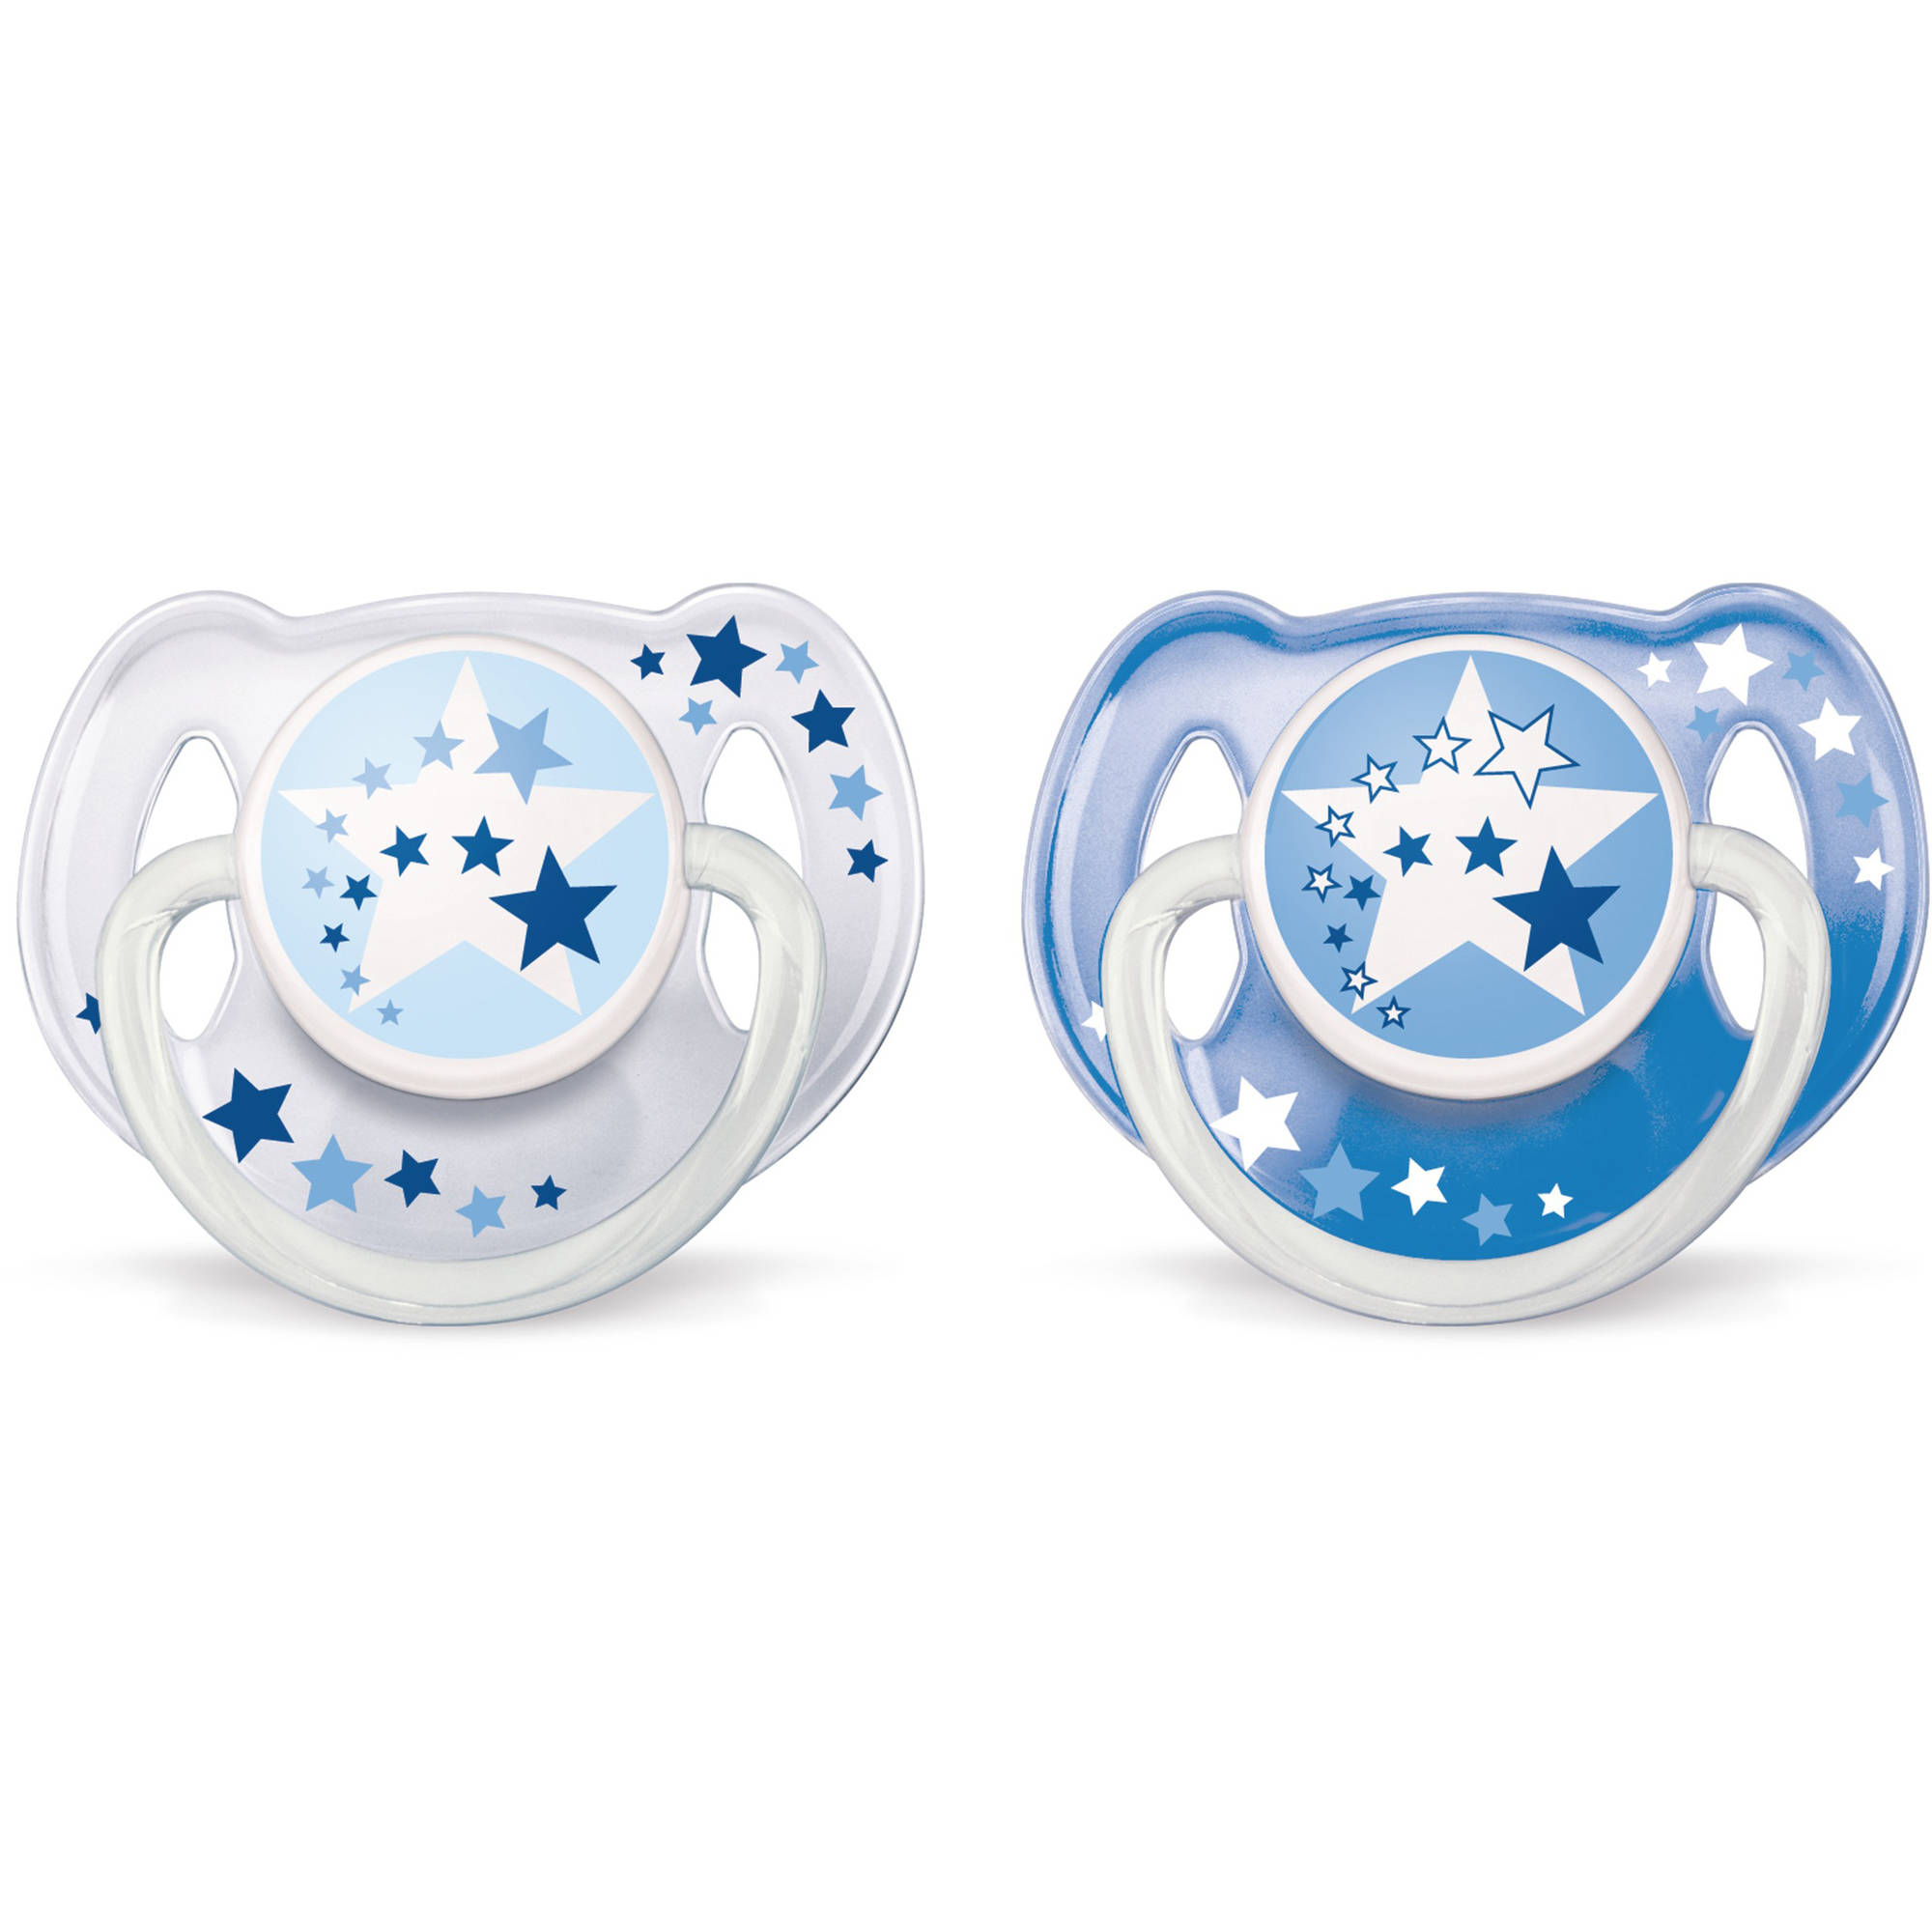 Philips Avent Glow in the Dark Orthodontic Pacifier, Toddler 6-18 Months, 2-Pack, Blue, BPA-Free